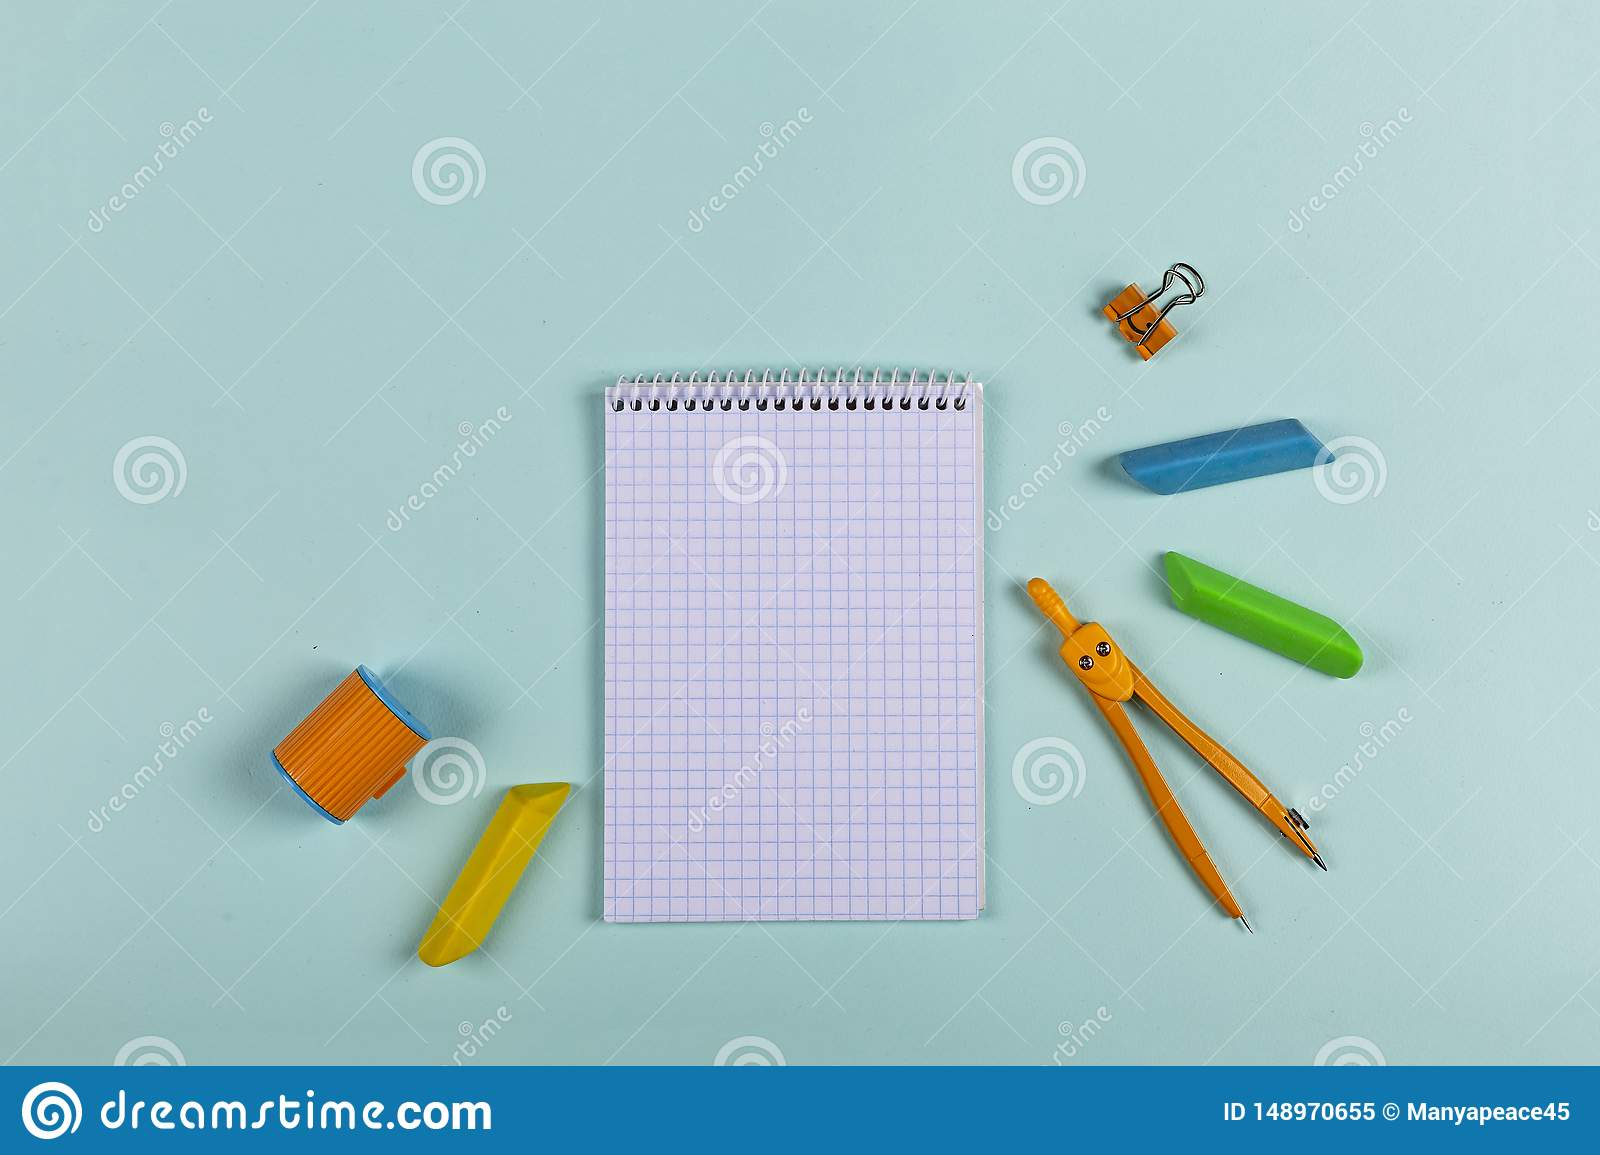 Wallpaper Clipart Cartoon Art Powerpoint Anime High School Design Colorful Stock Image Image Of Line Flat 148970655